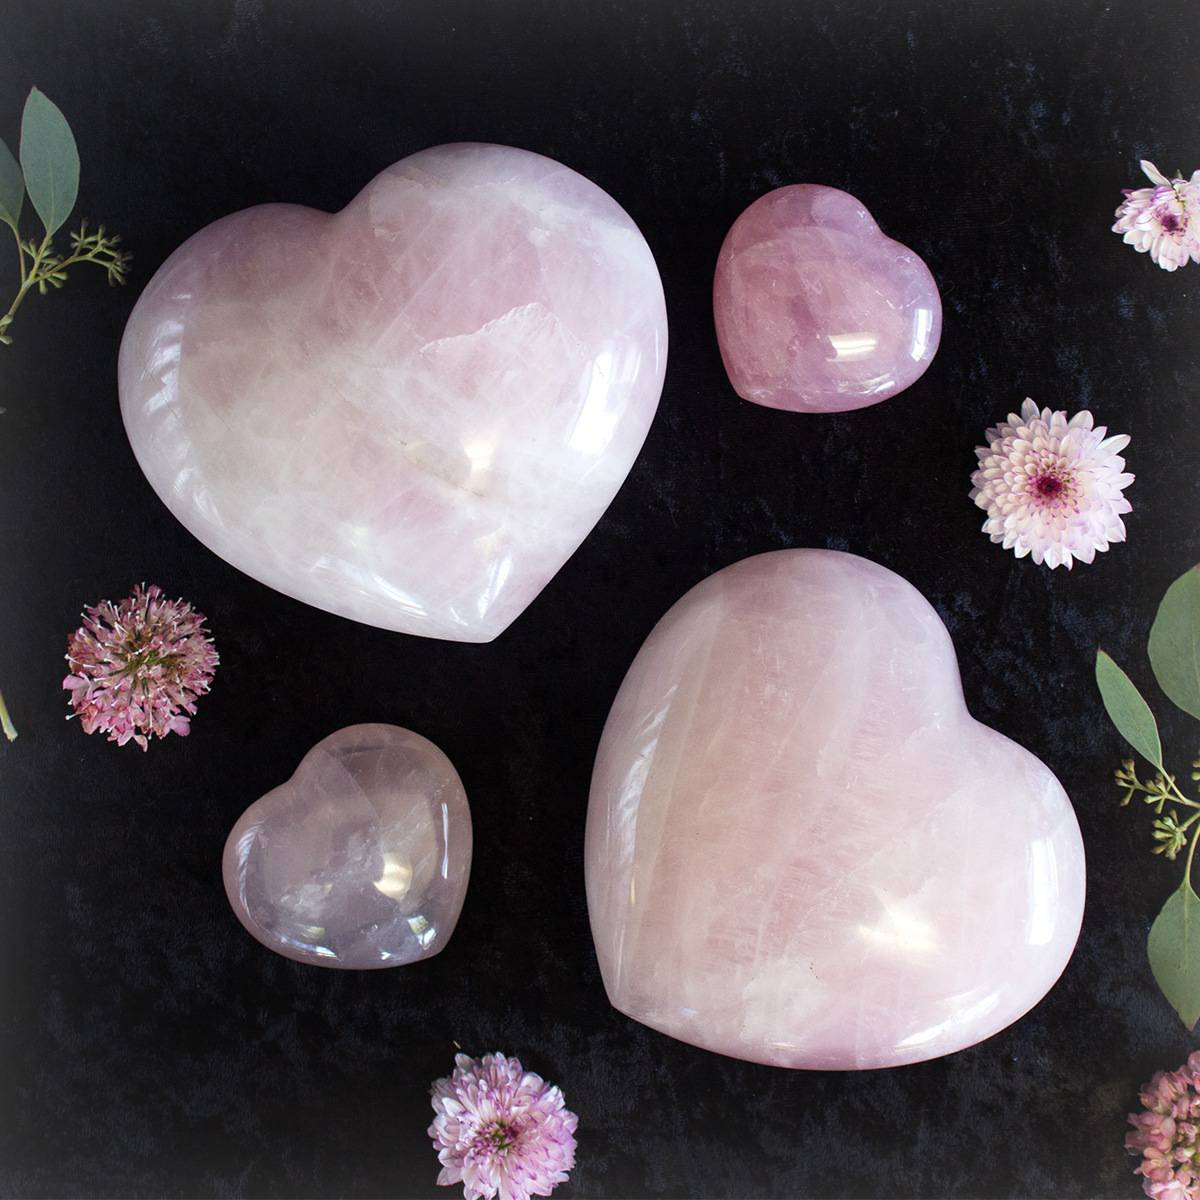 Rose Quartz Hearts For Powerful Love Medicine And Heart Healing